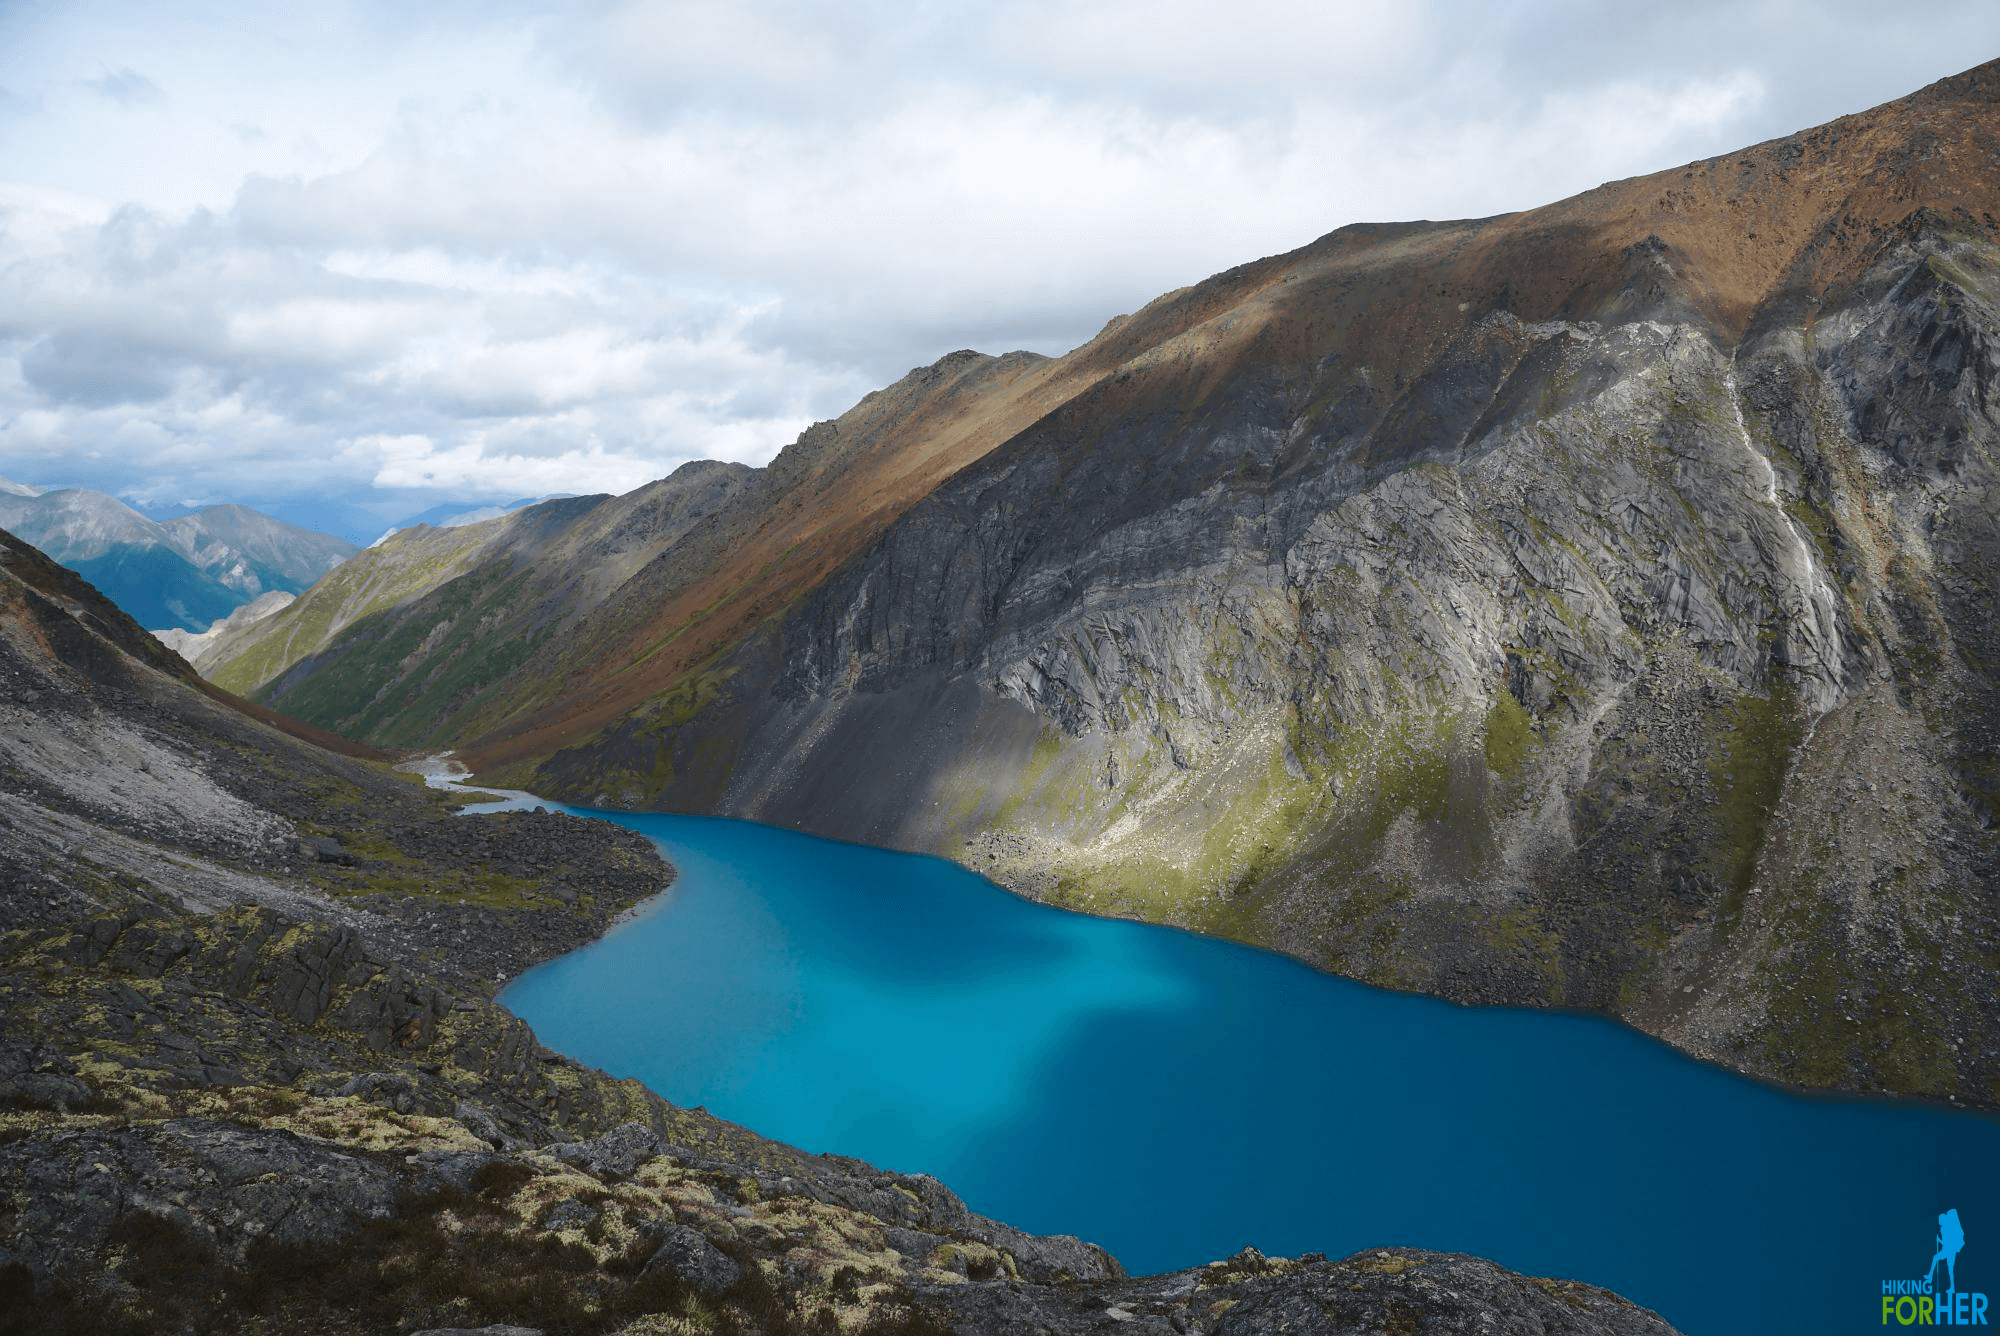 Deep blue lake surrounded by mountains